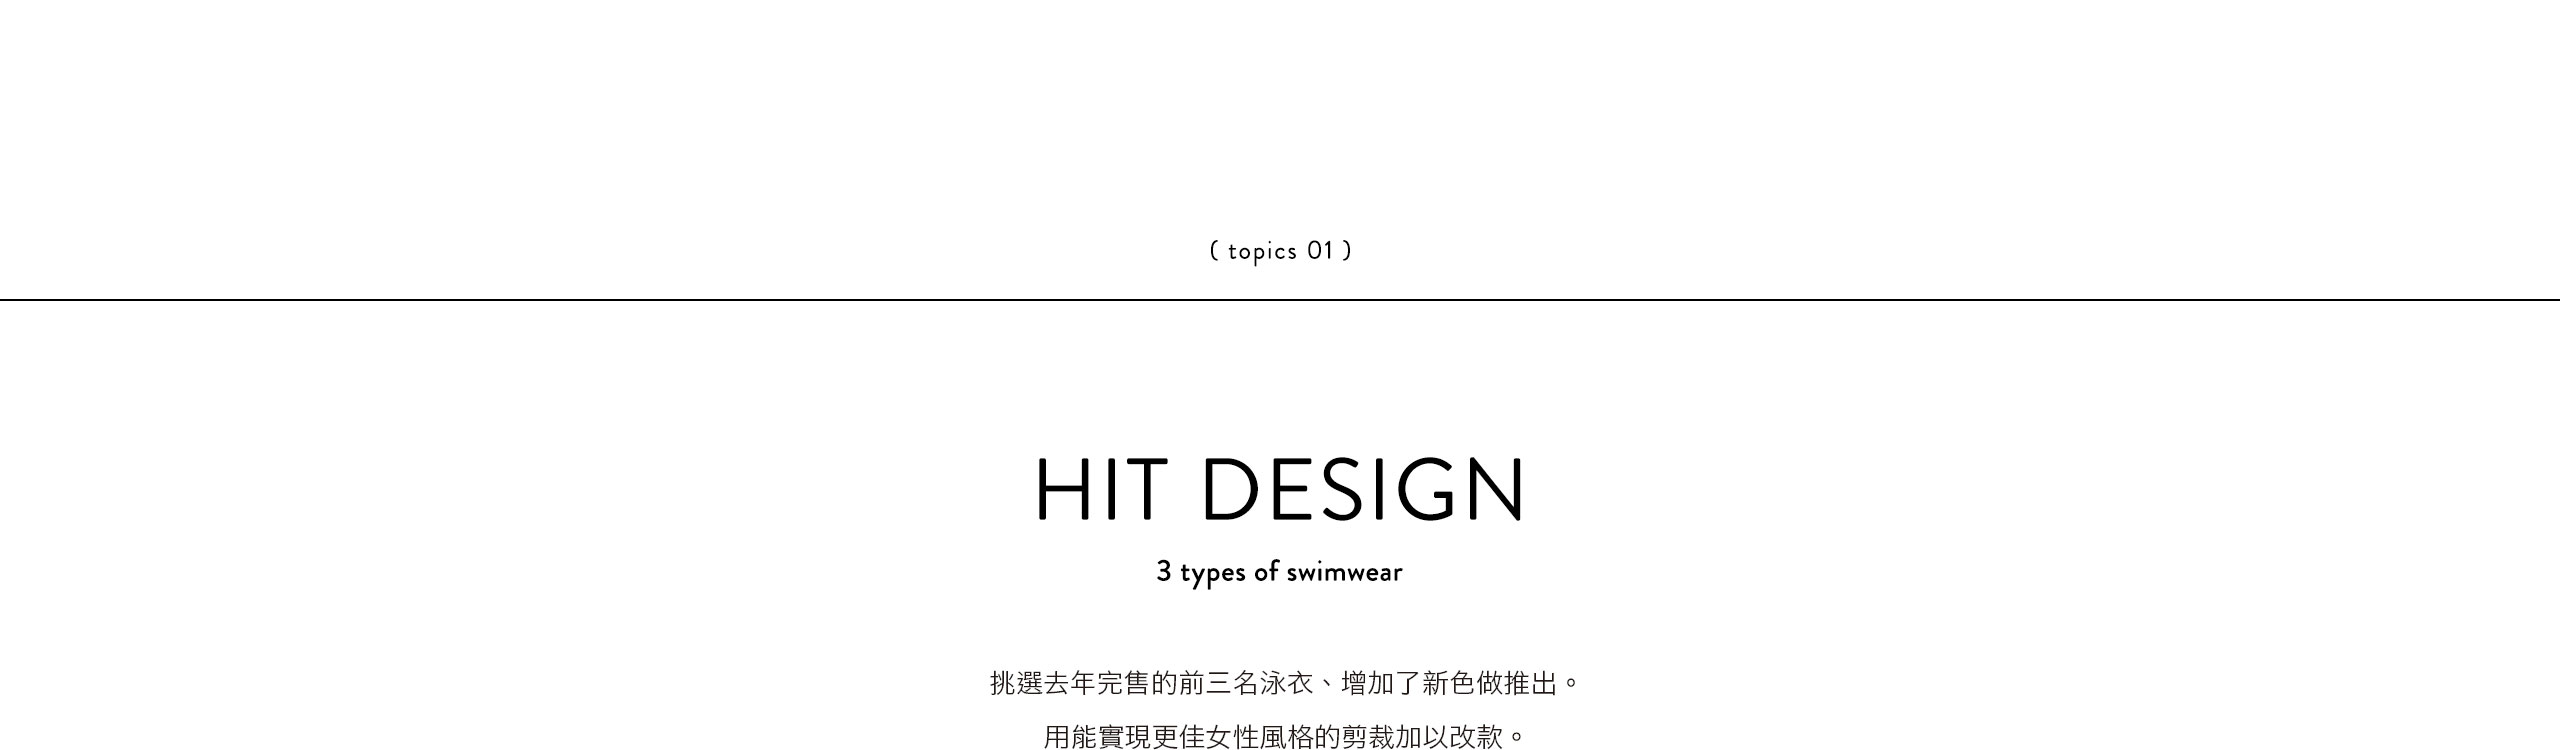 topics 01 HIT DESIGN